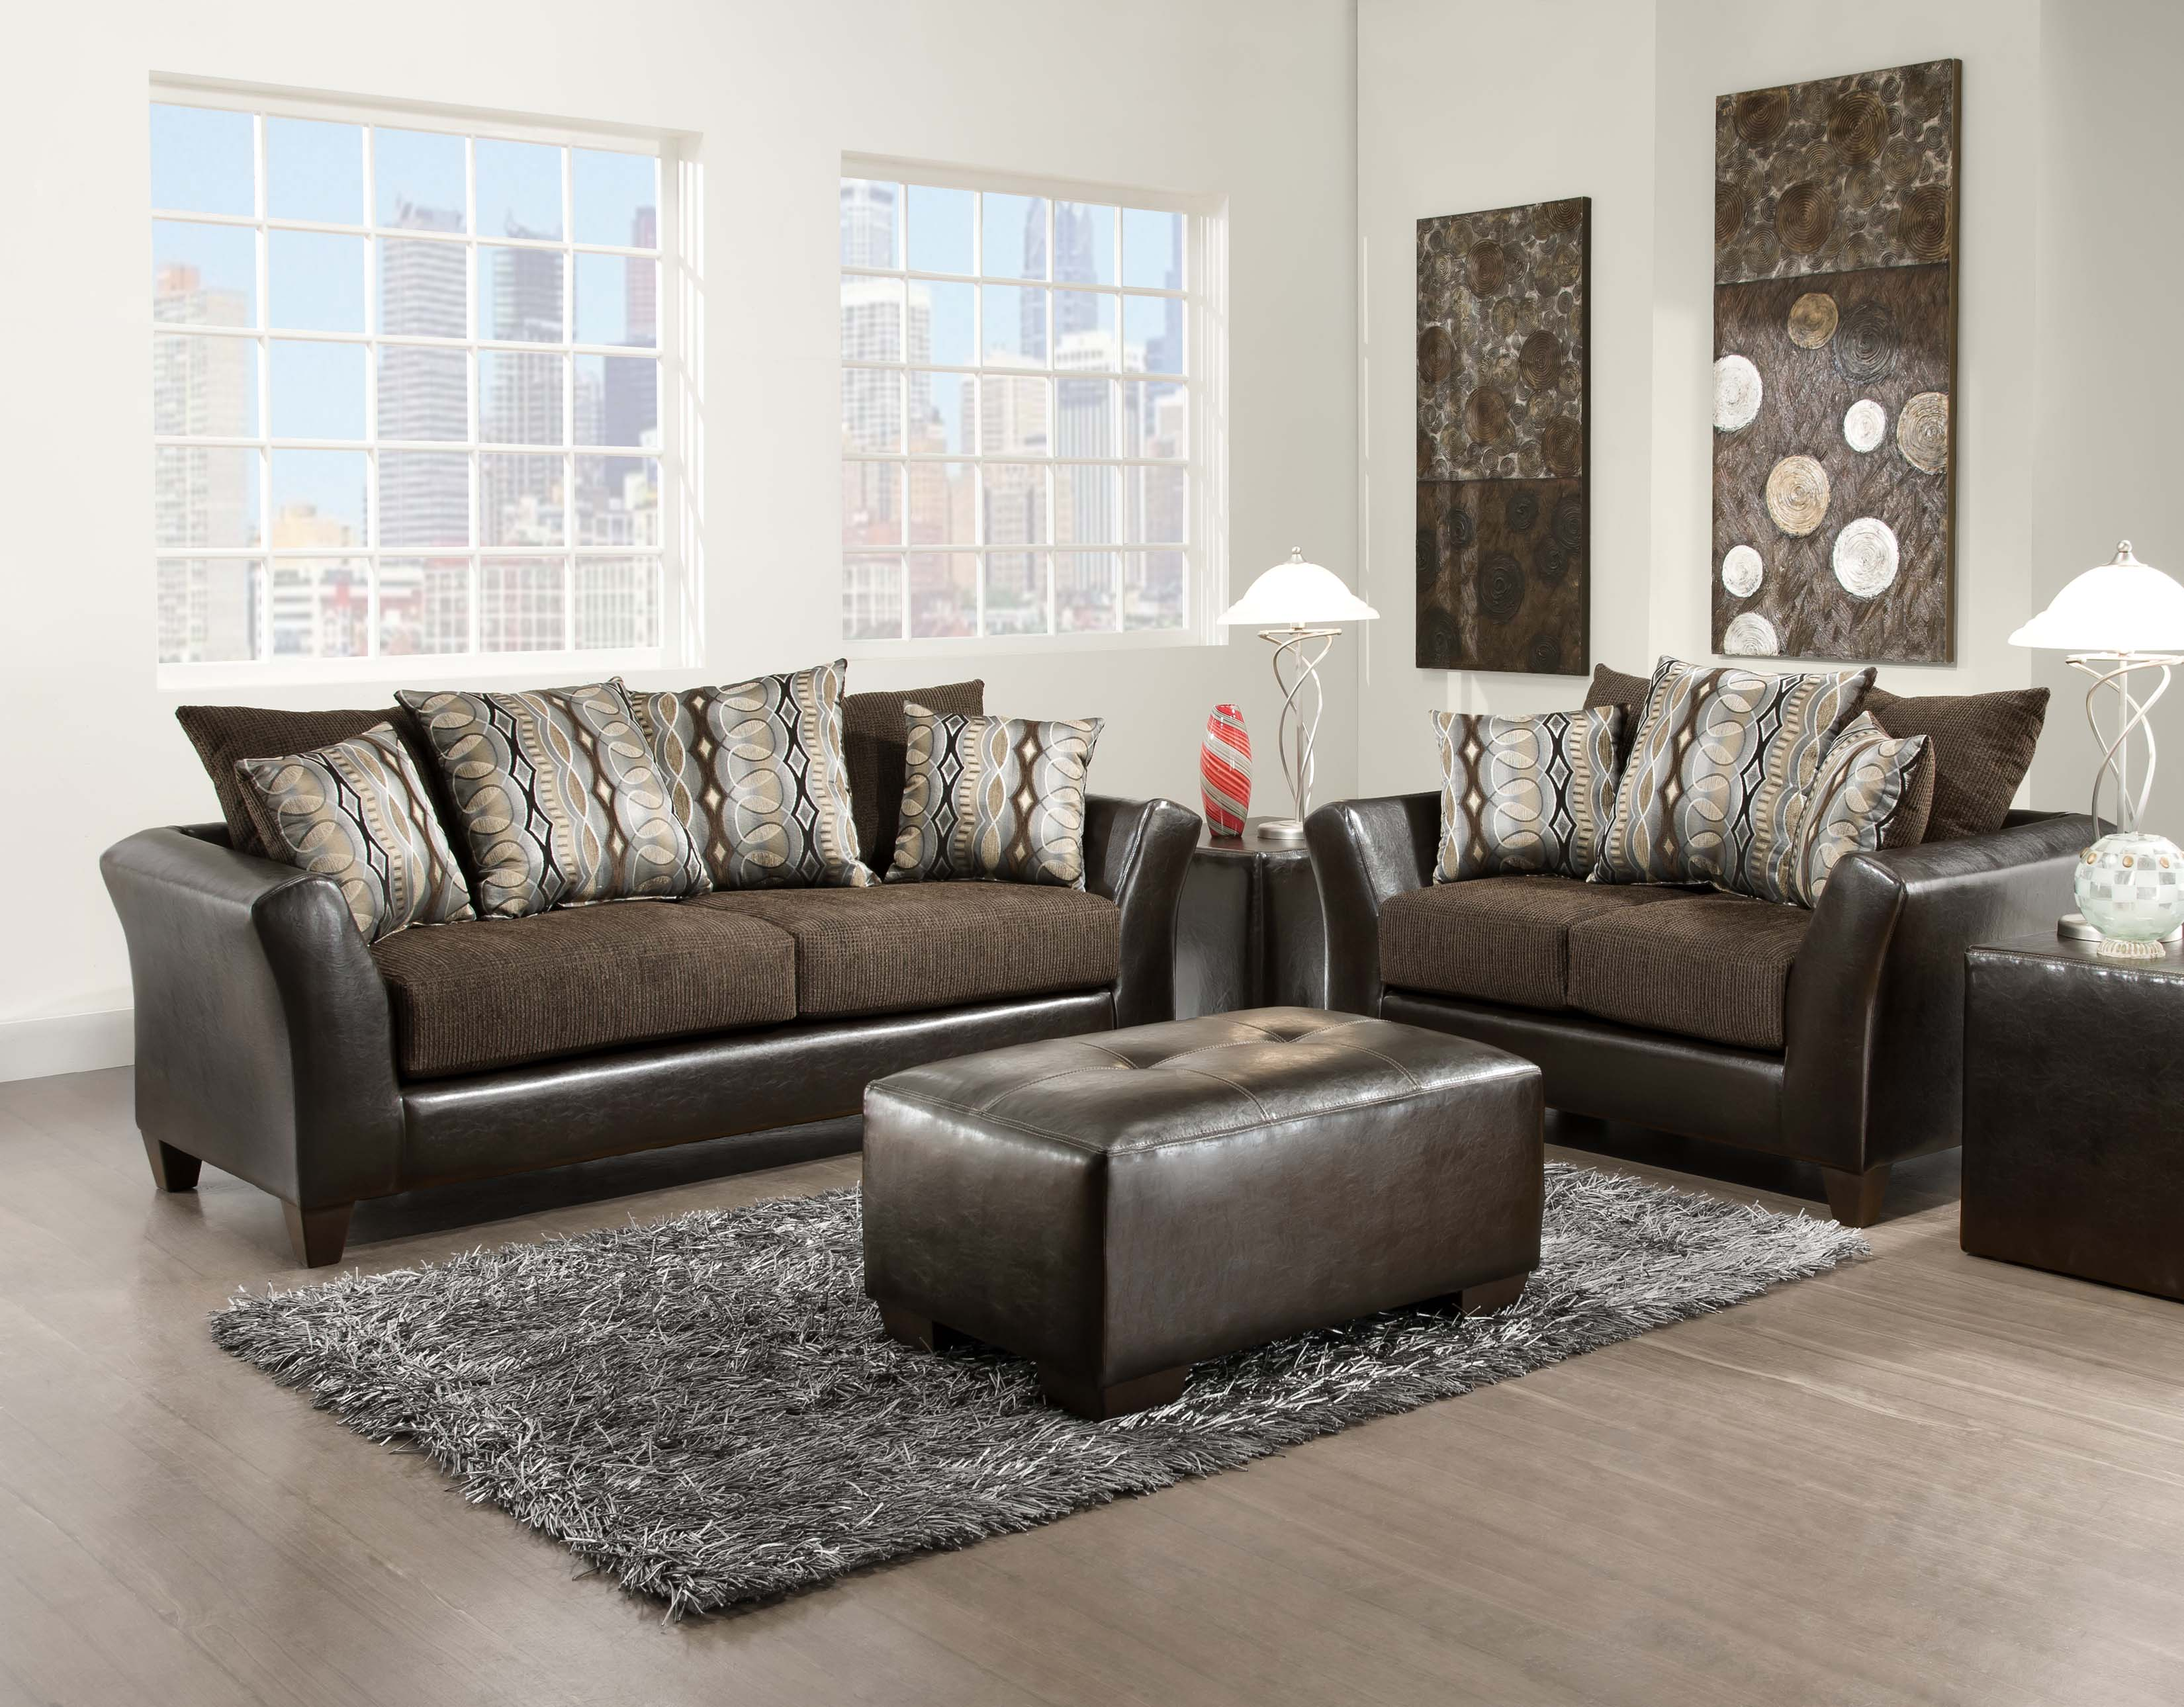 stores fine outlets tx affordable dfw area baby in used dallas furniture